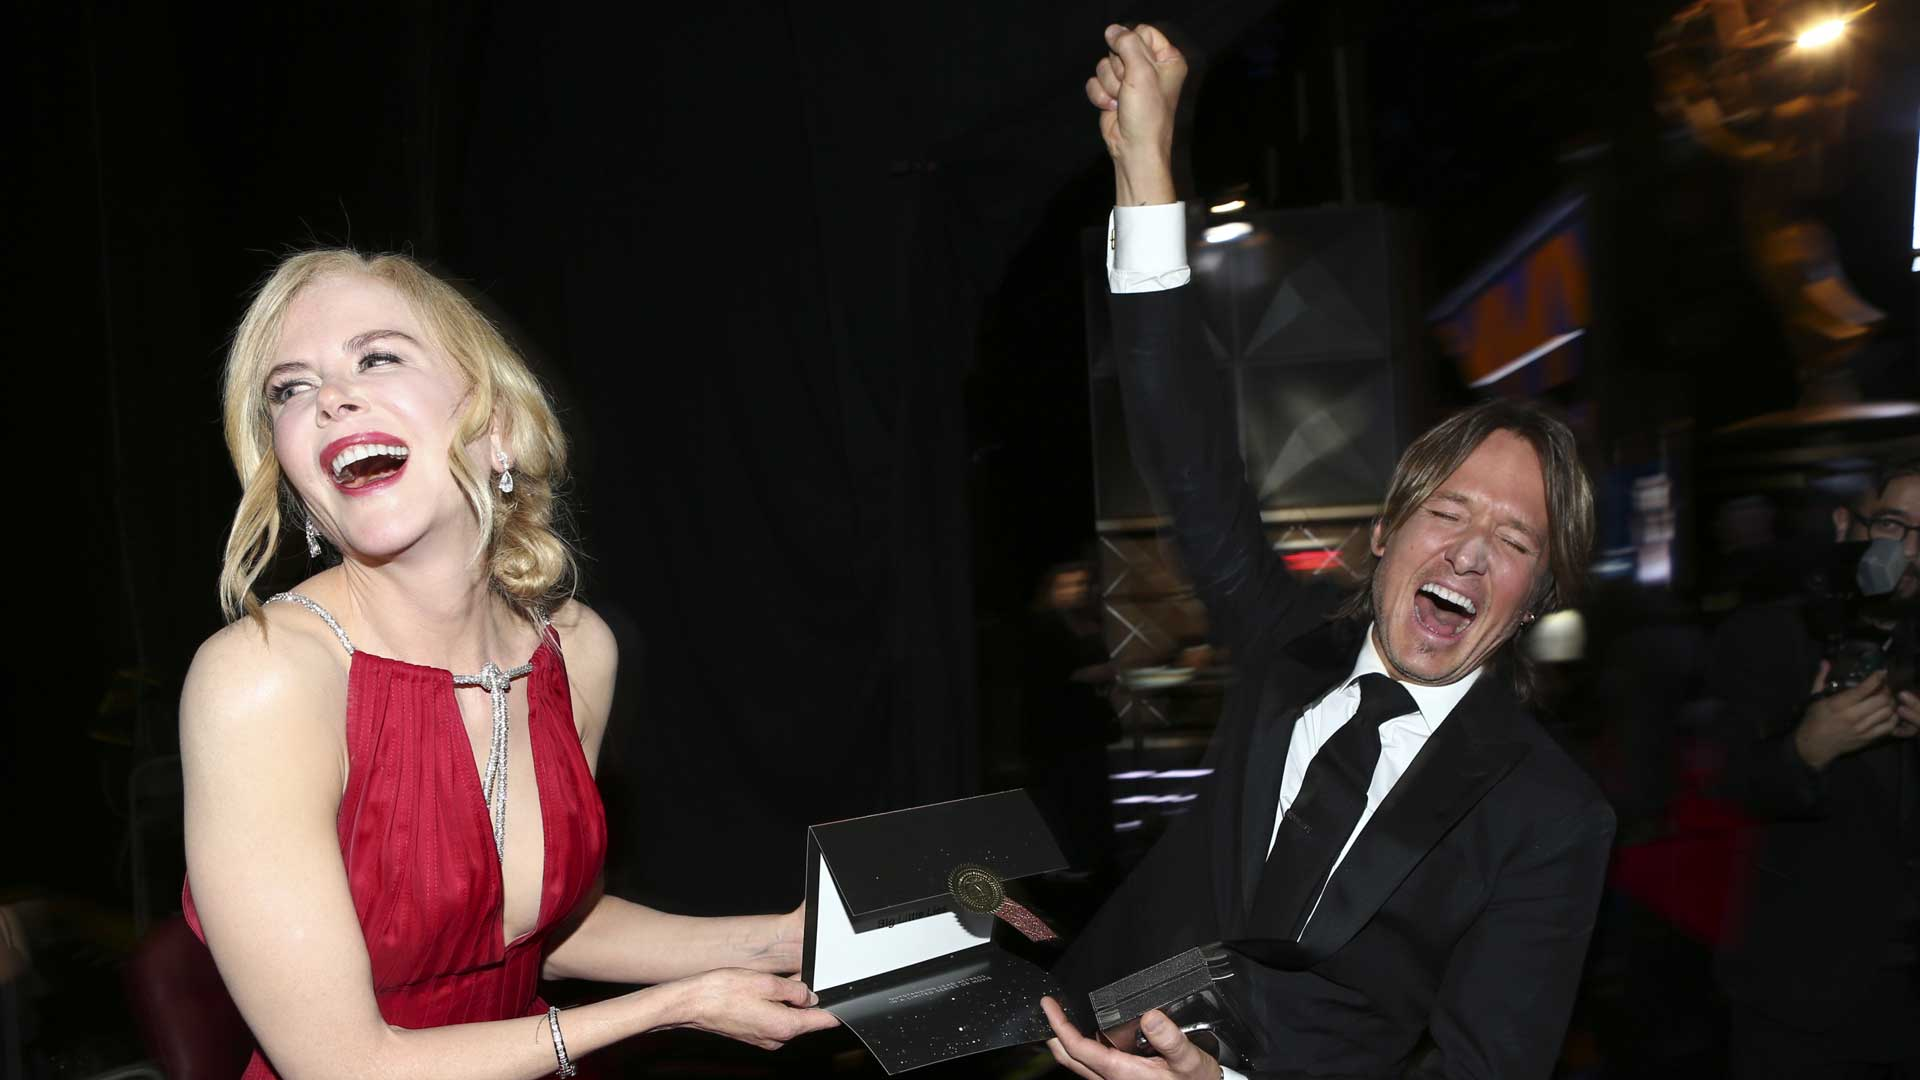 Keith Urban can't contain his excitement for wife Nicole Kidman's Emmy win.